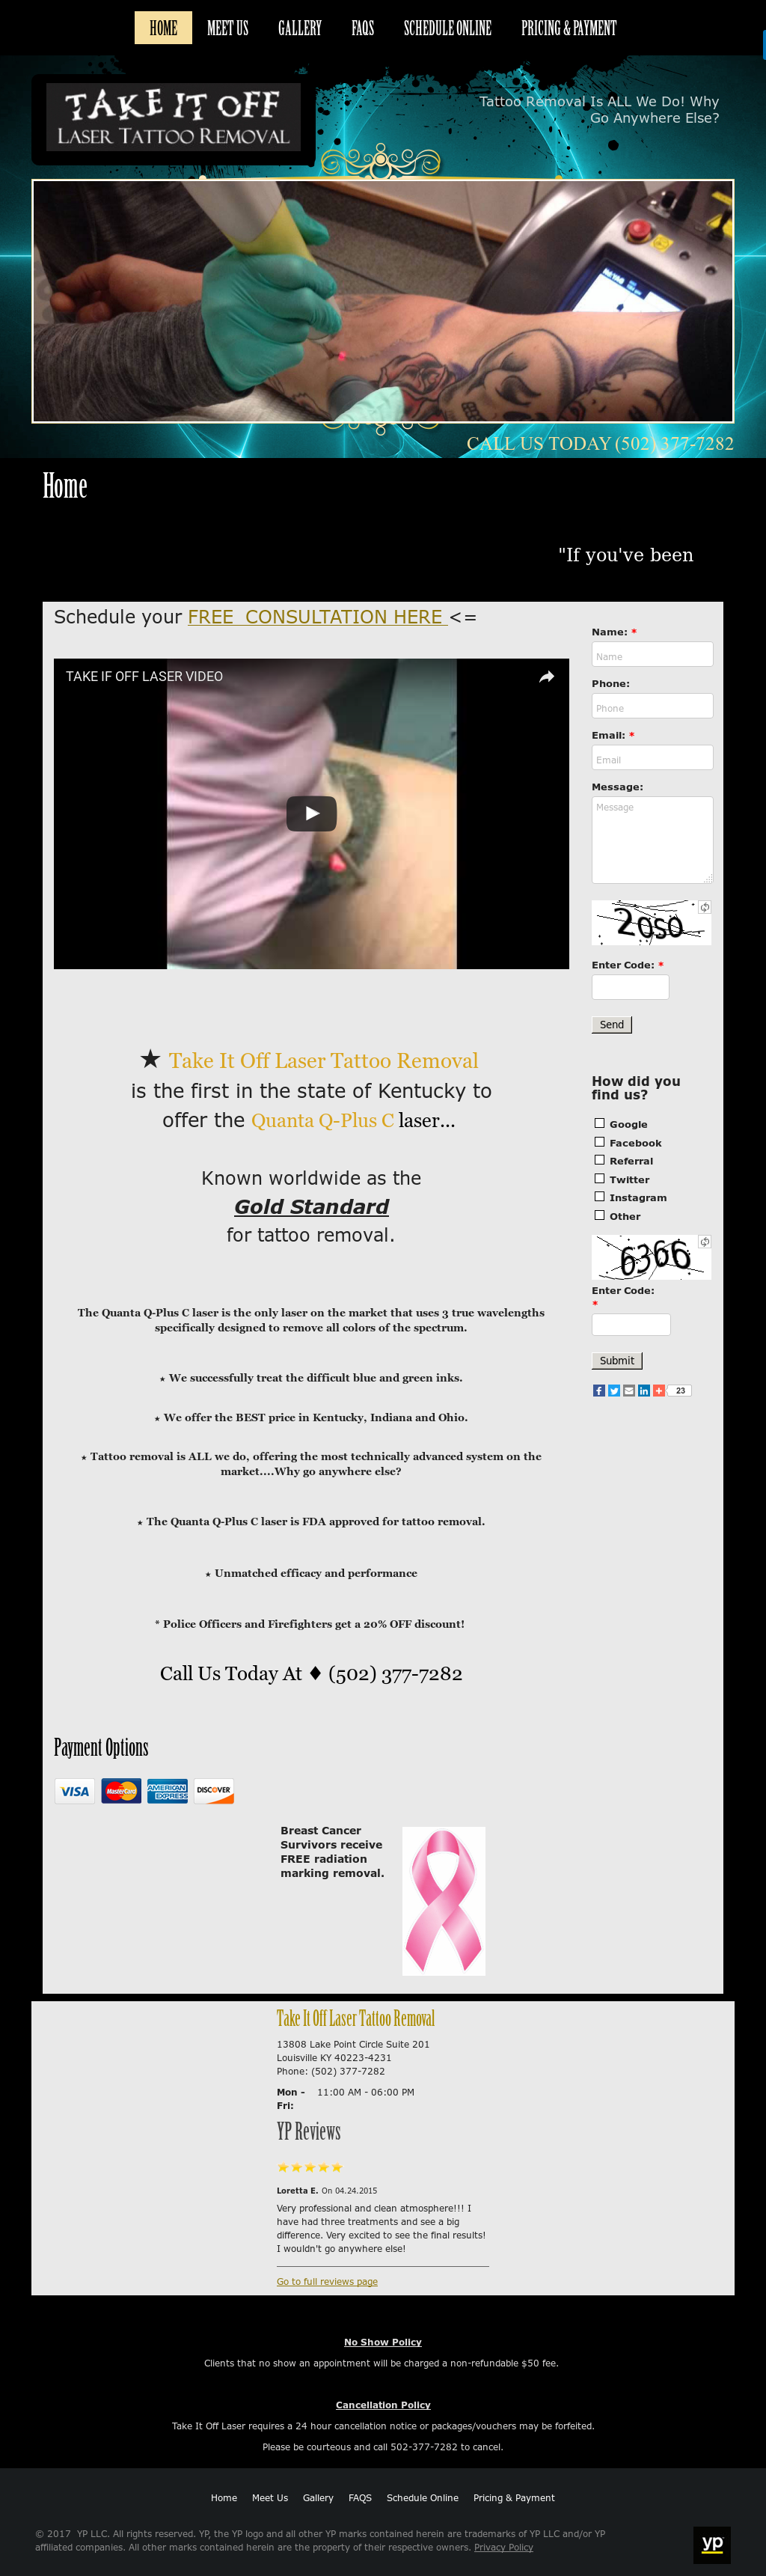 Take It Off Laser Tattoo Removal Competitors, Revenue and Employees ...